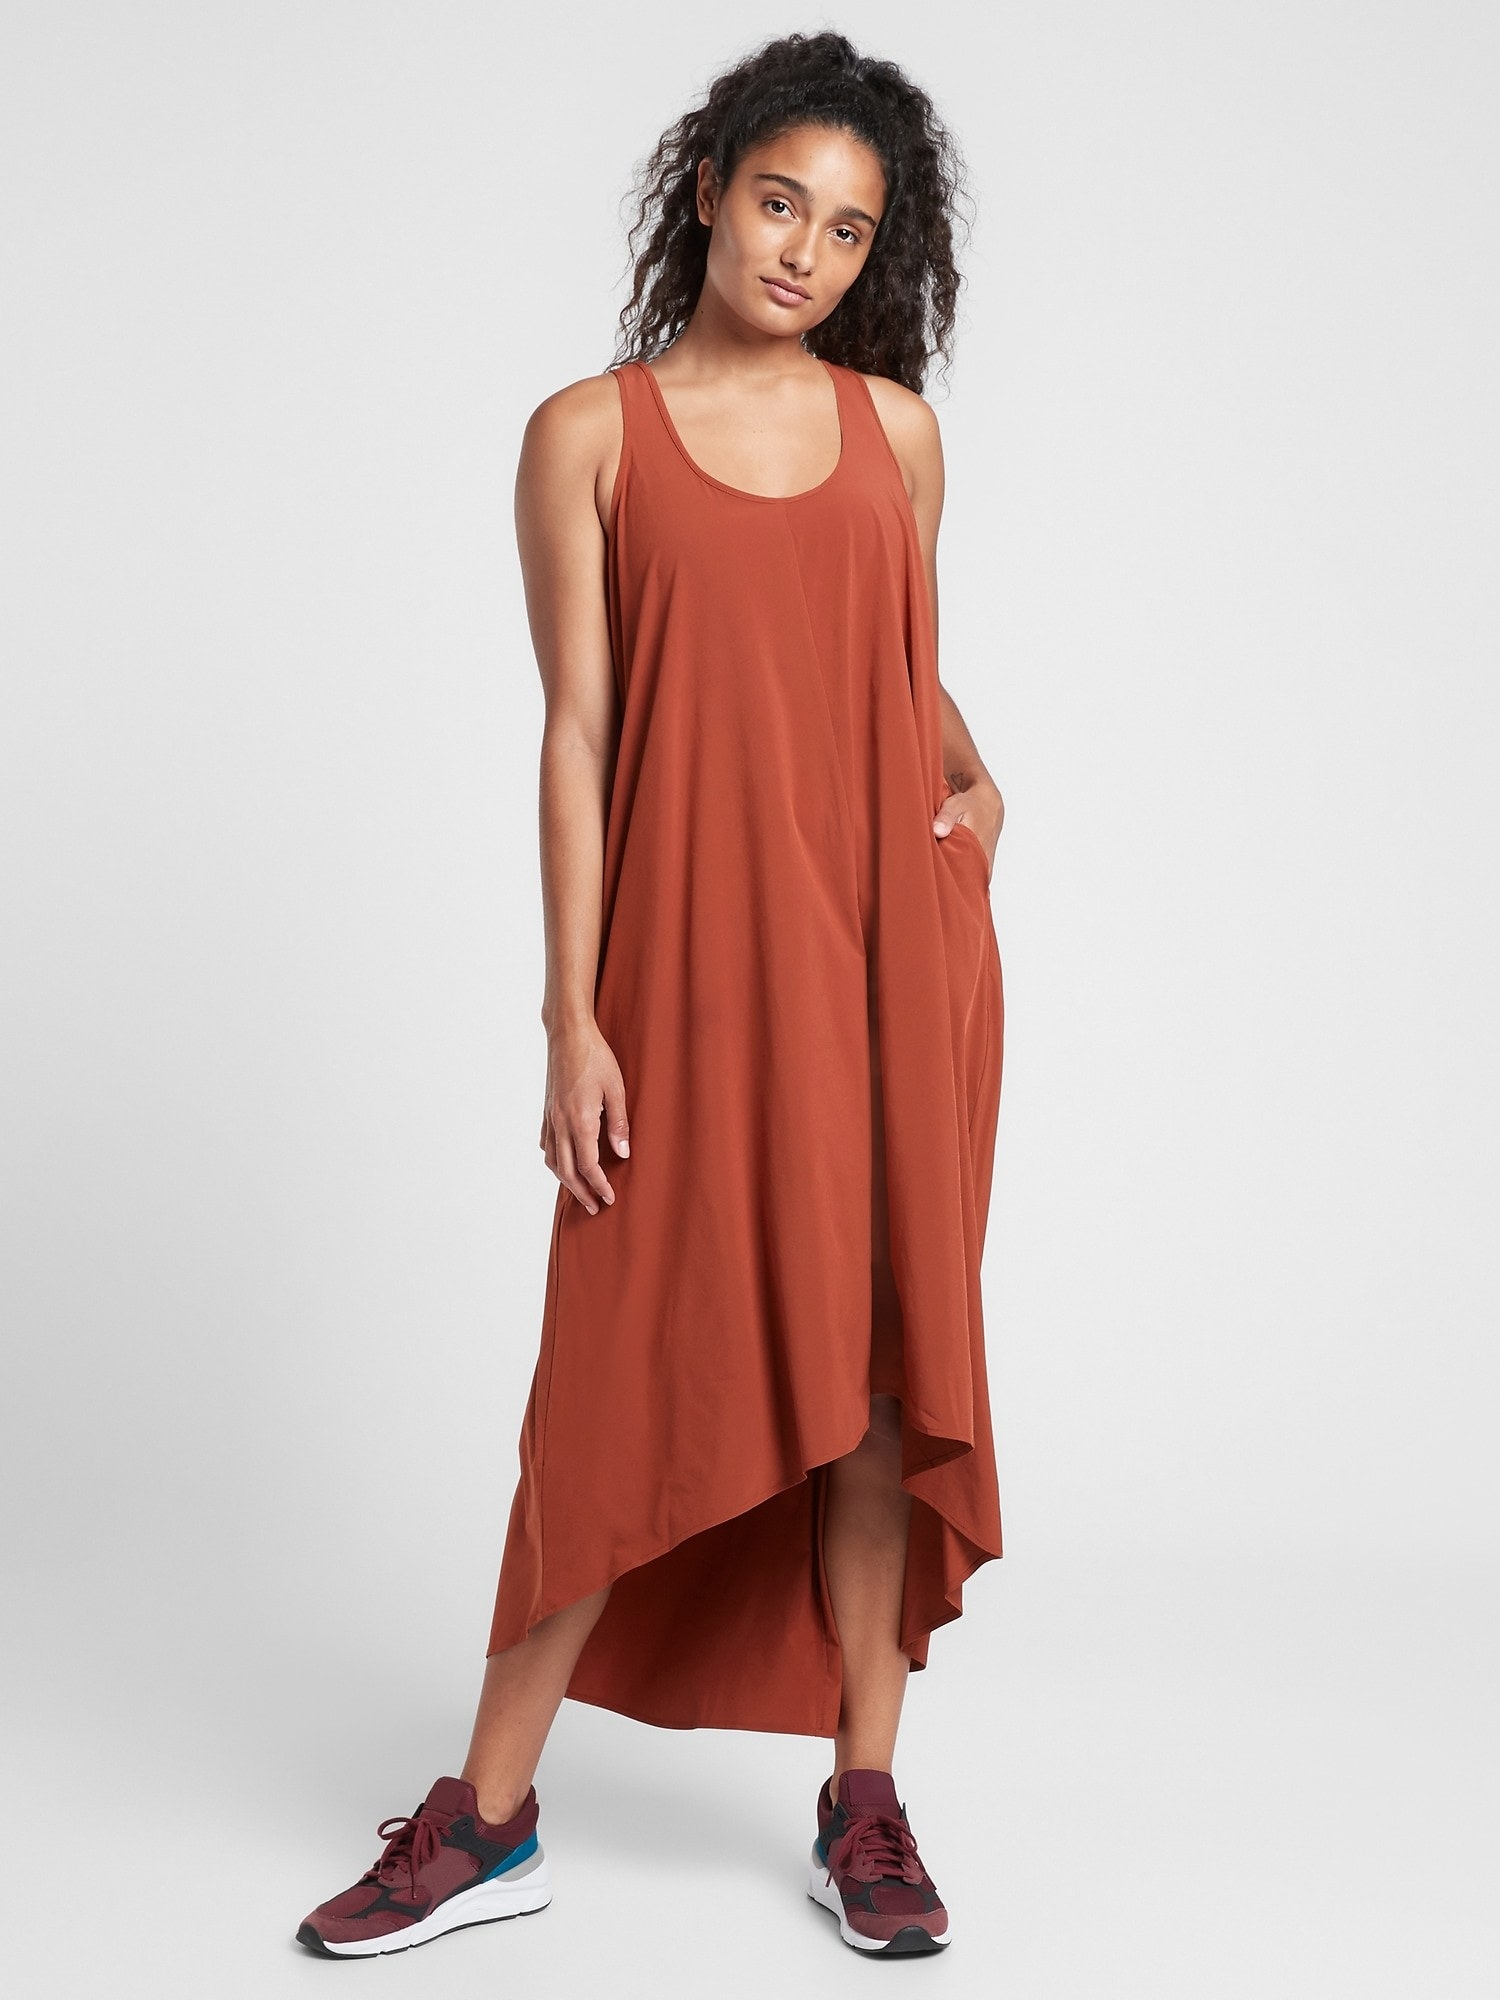 A model wearing the dress in Russet Brown